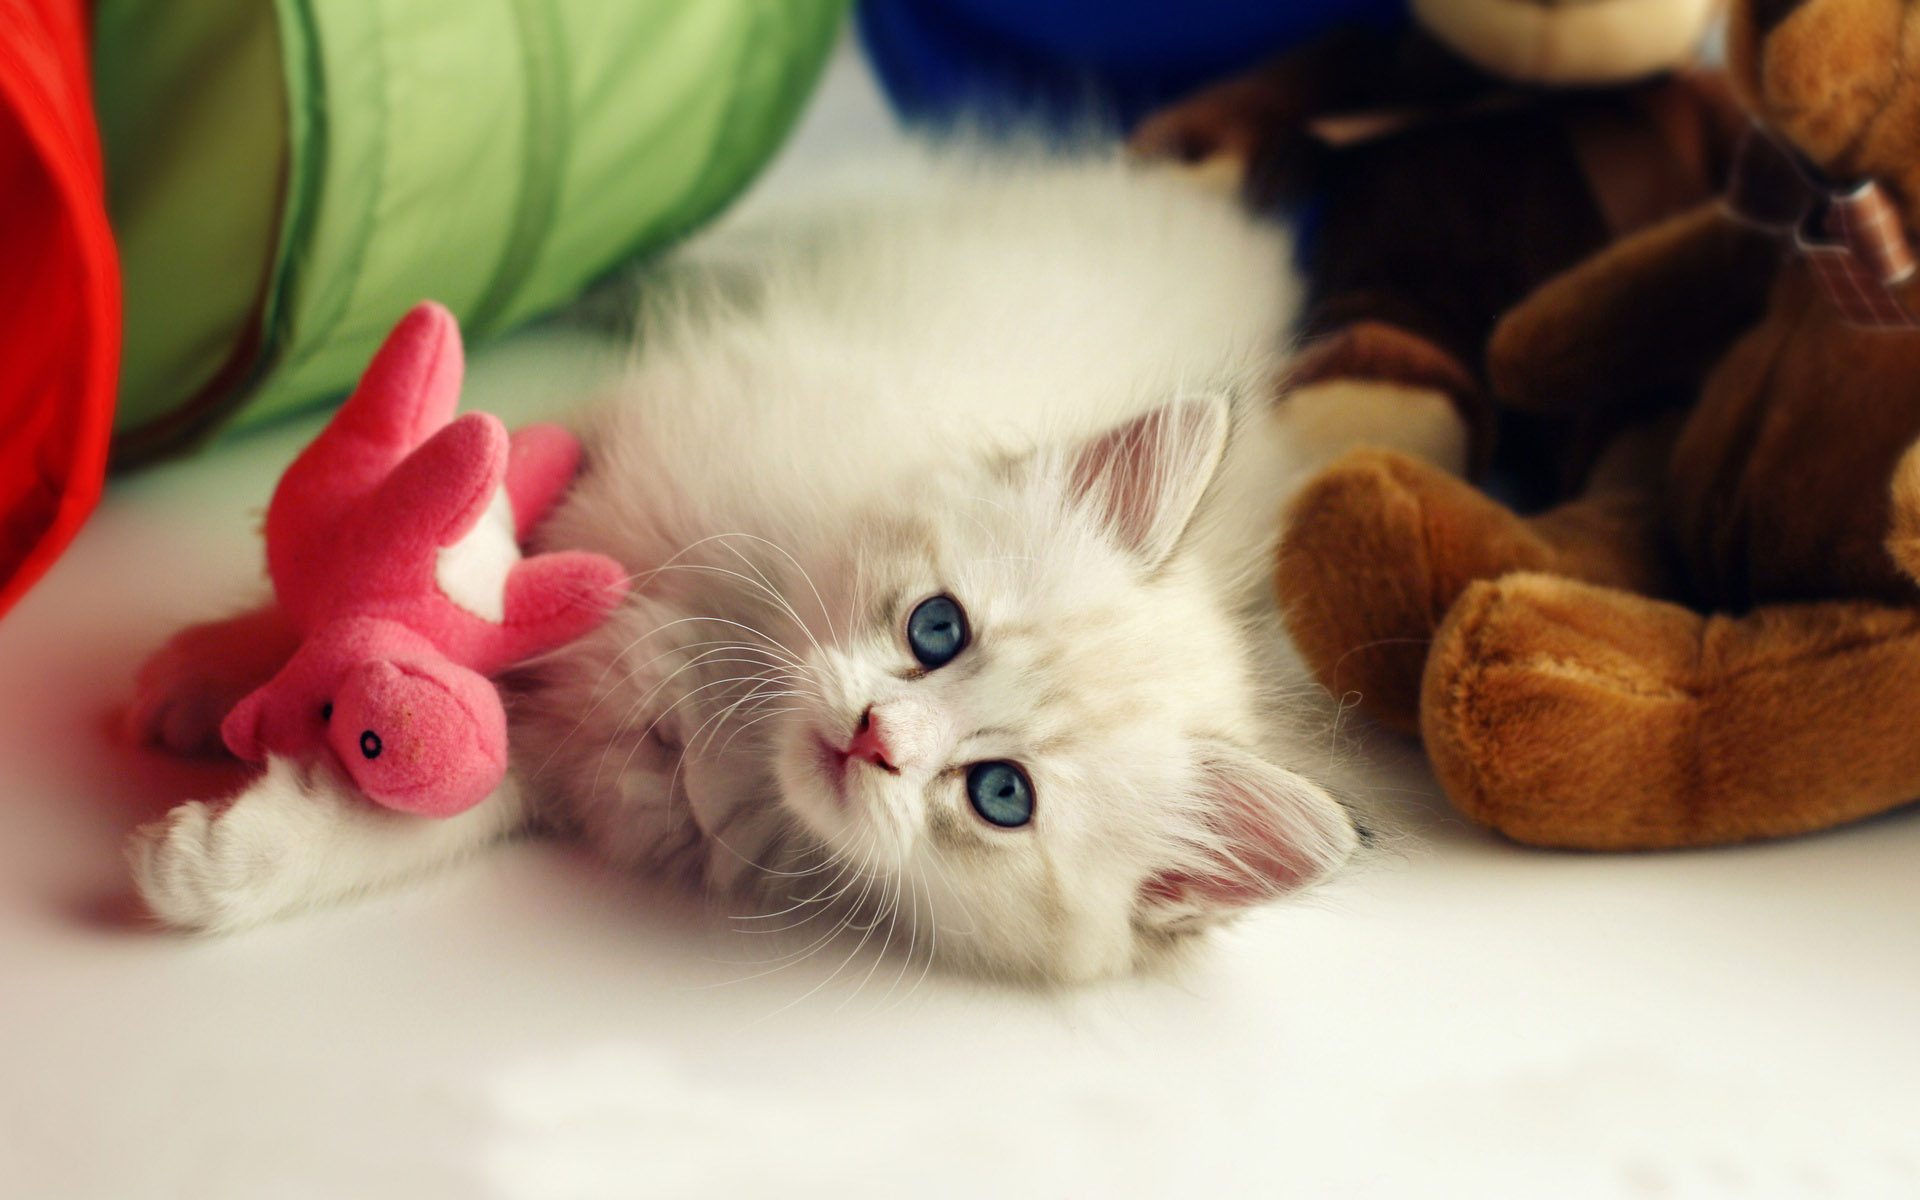 Cat Wallpapers Free Download Latest Cute Hd Animal Desktop Images 1920x1200